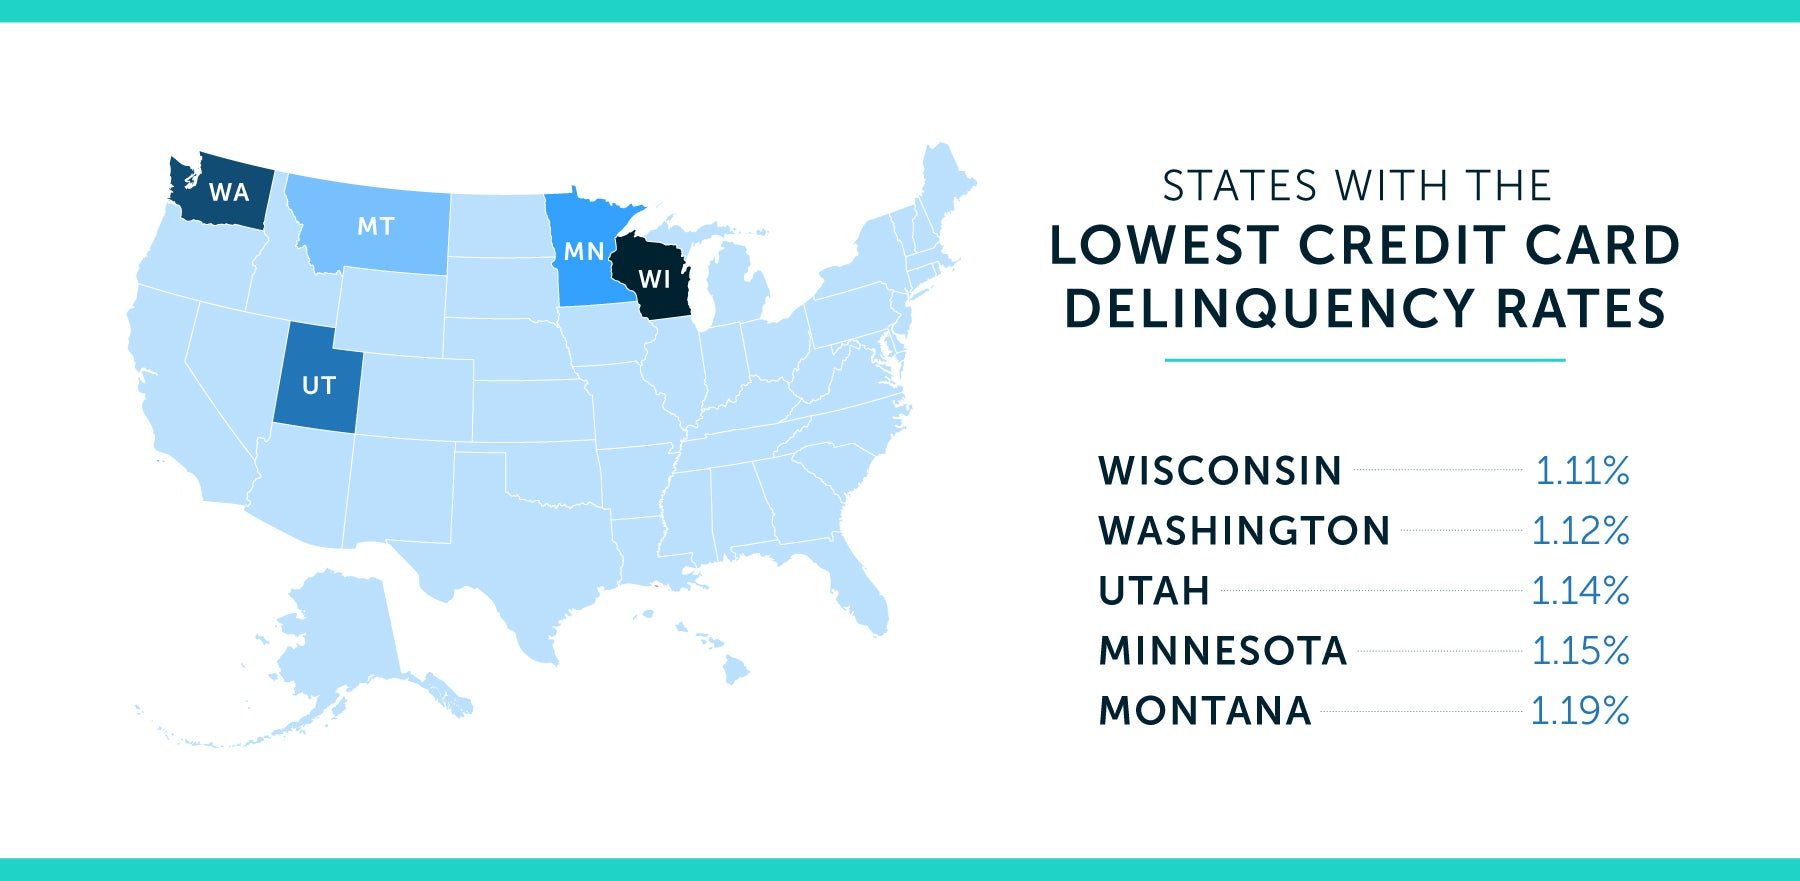 states with the lowest credit card delinquency rate